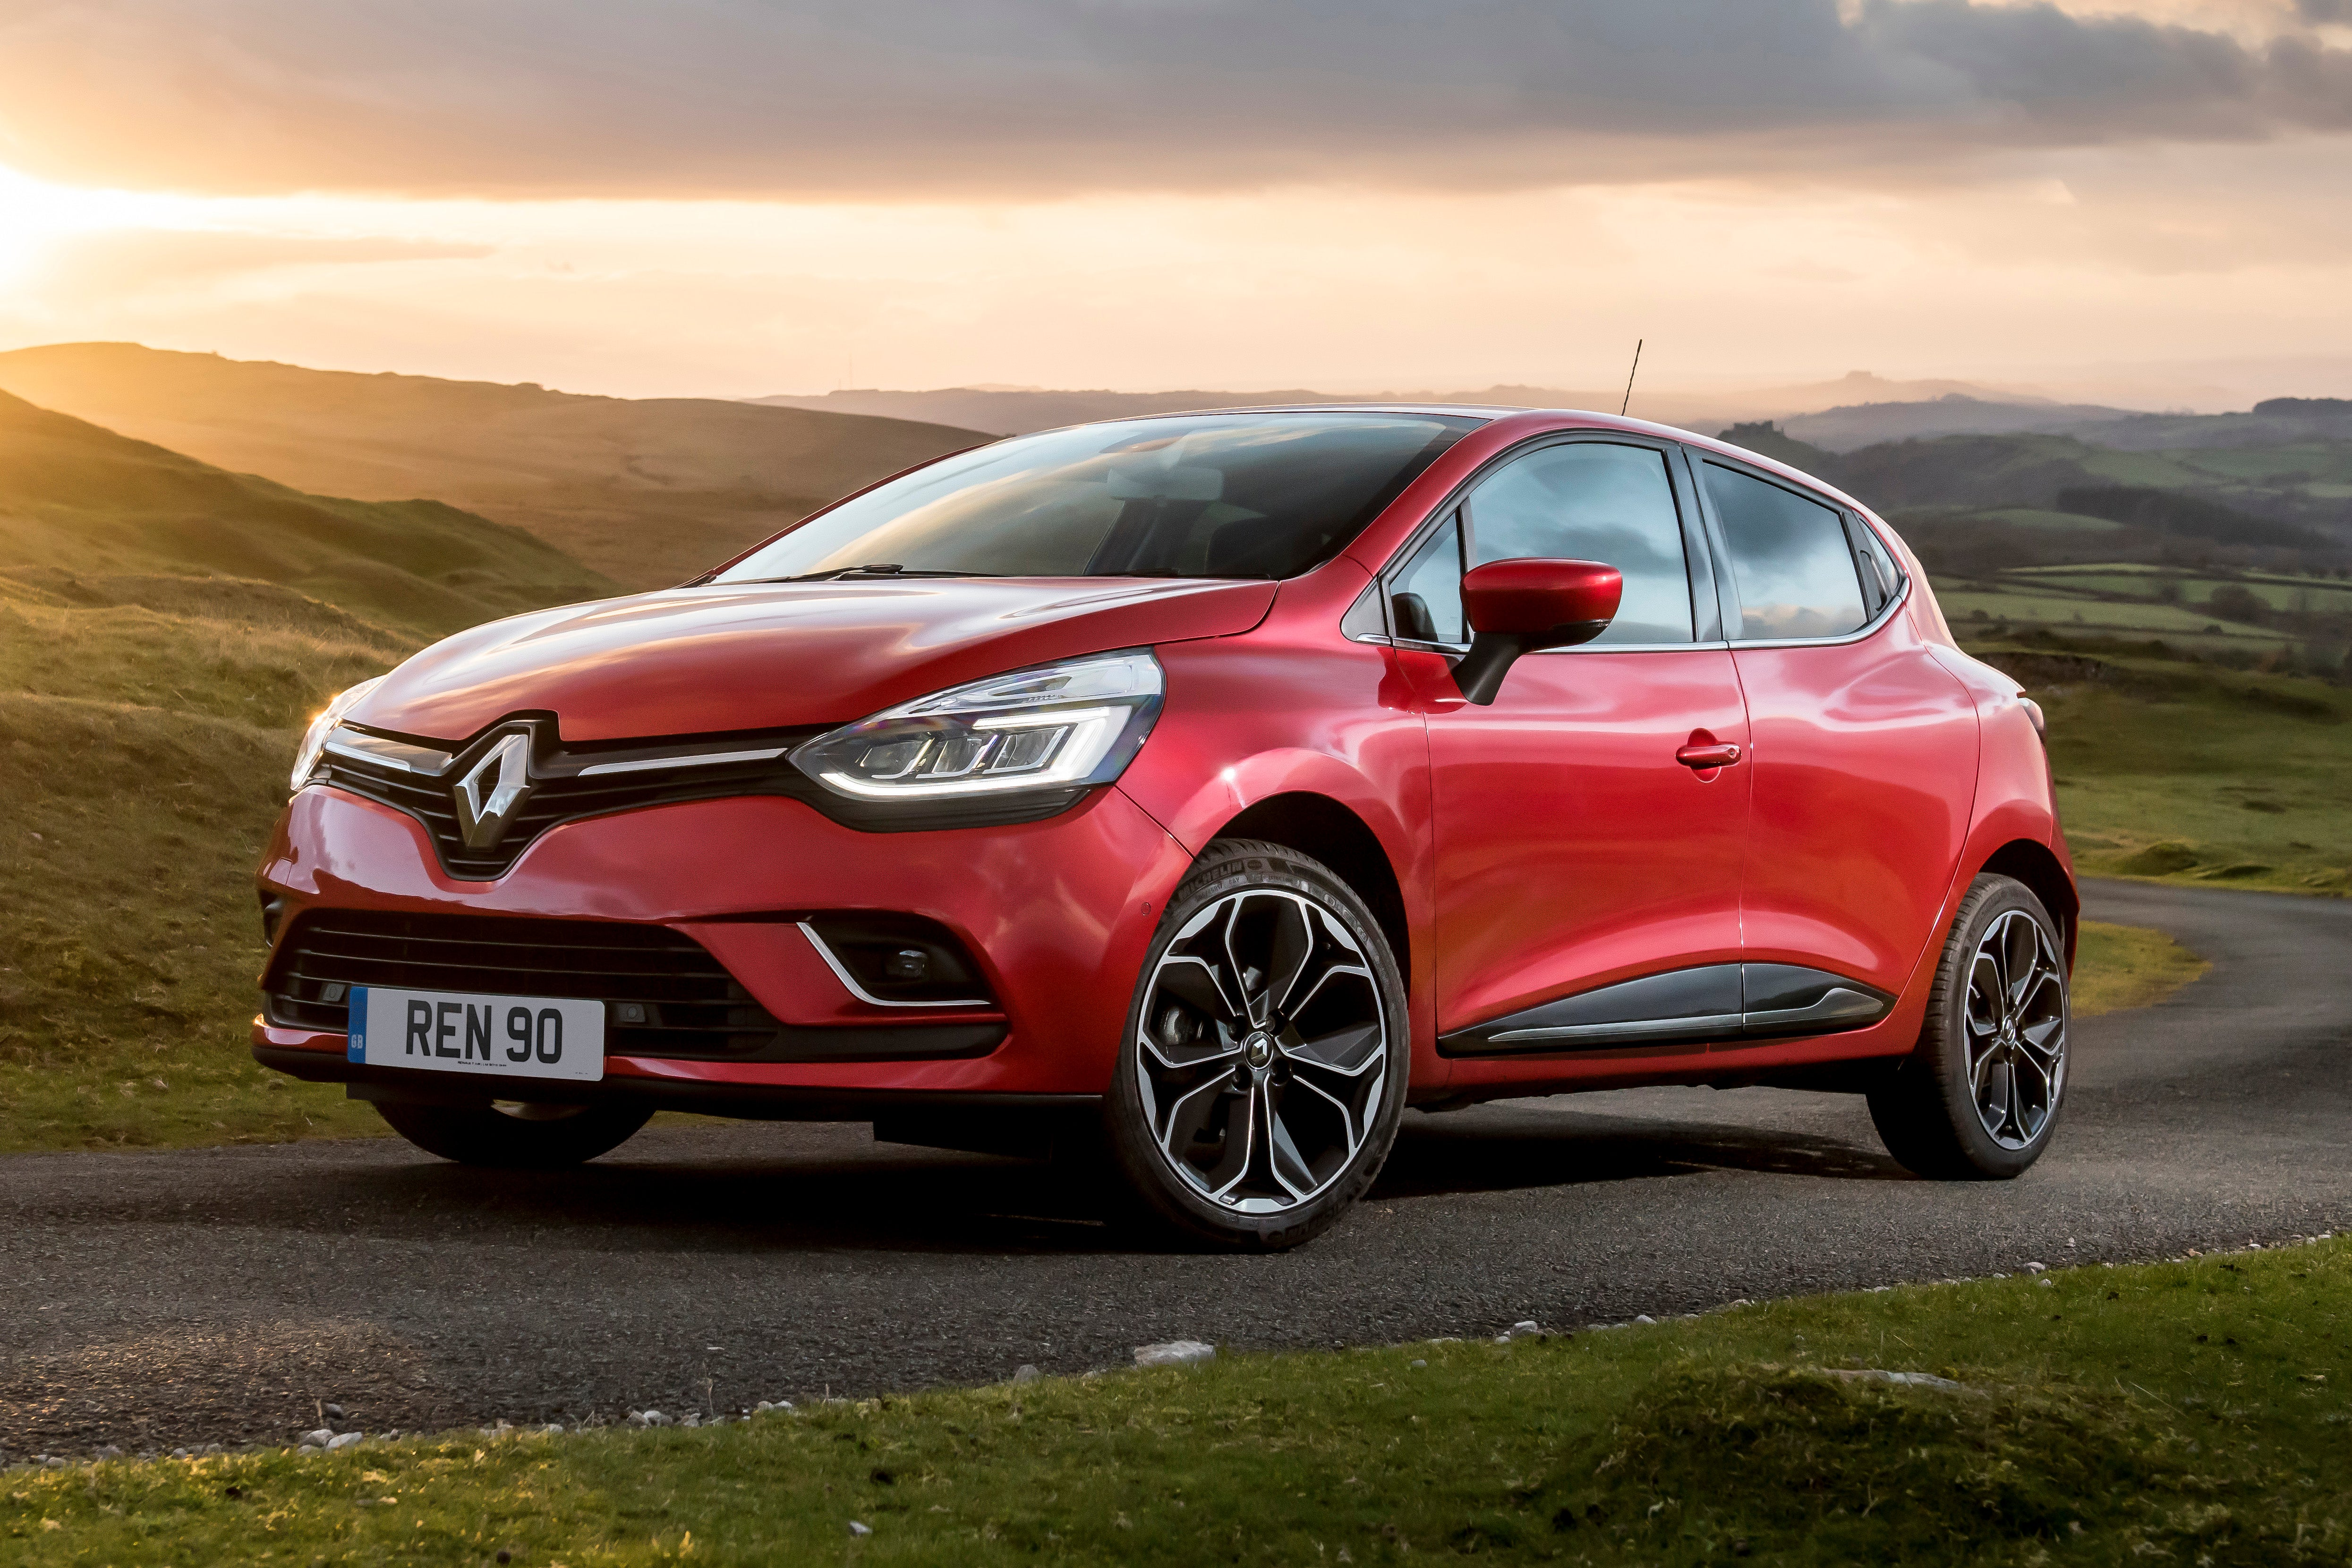 Renault Clio Front Side View